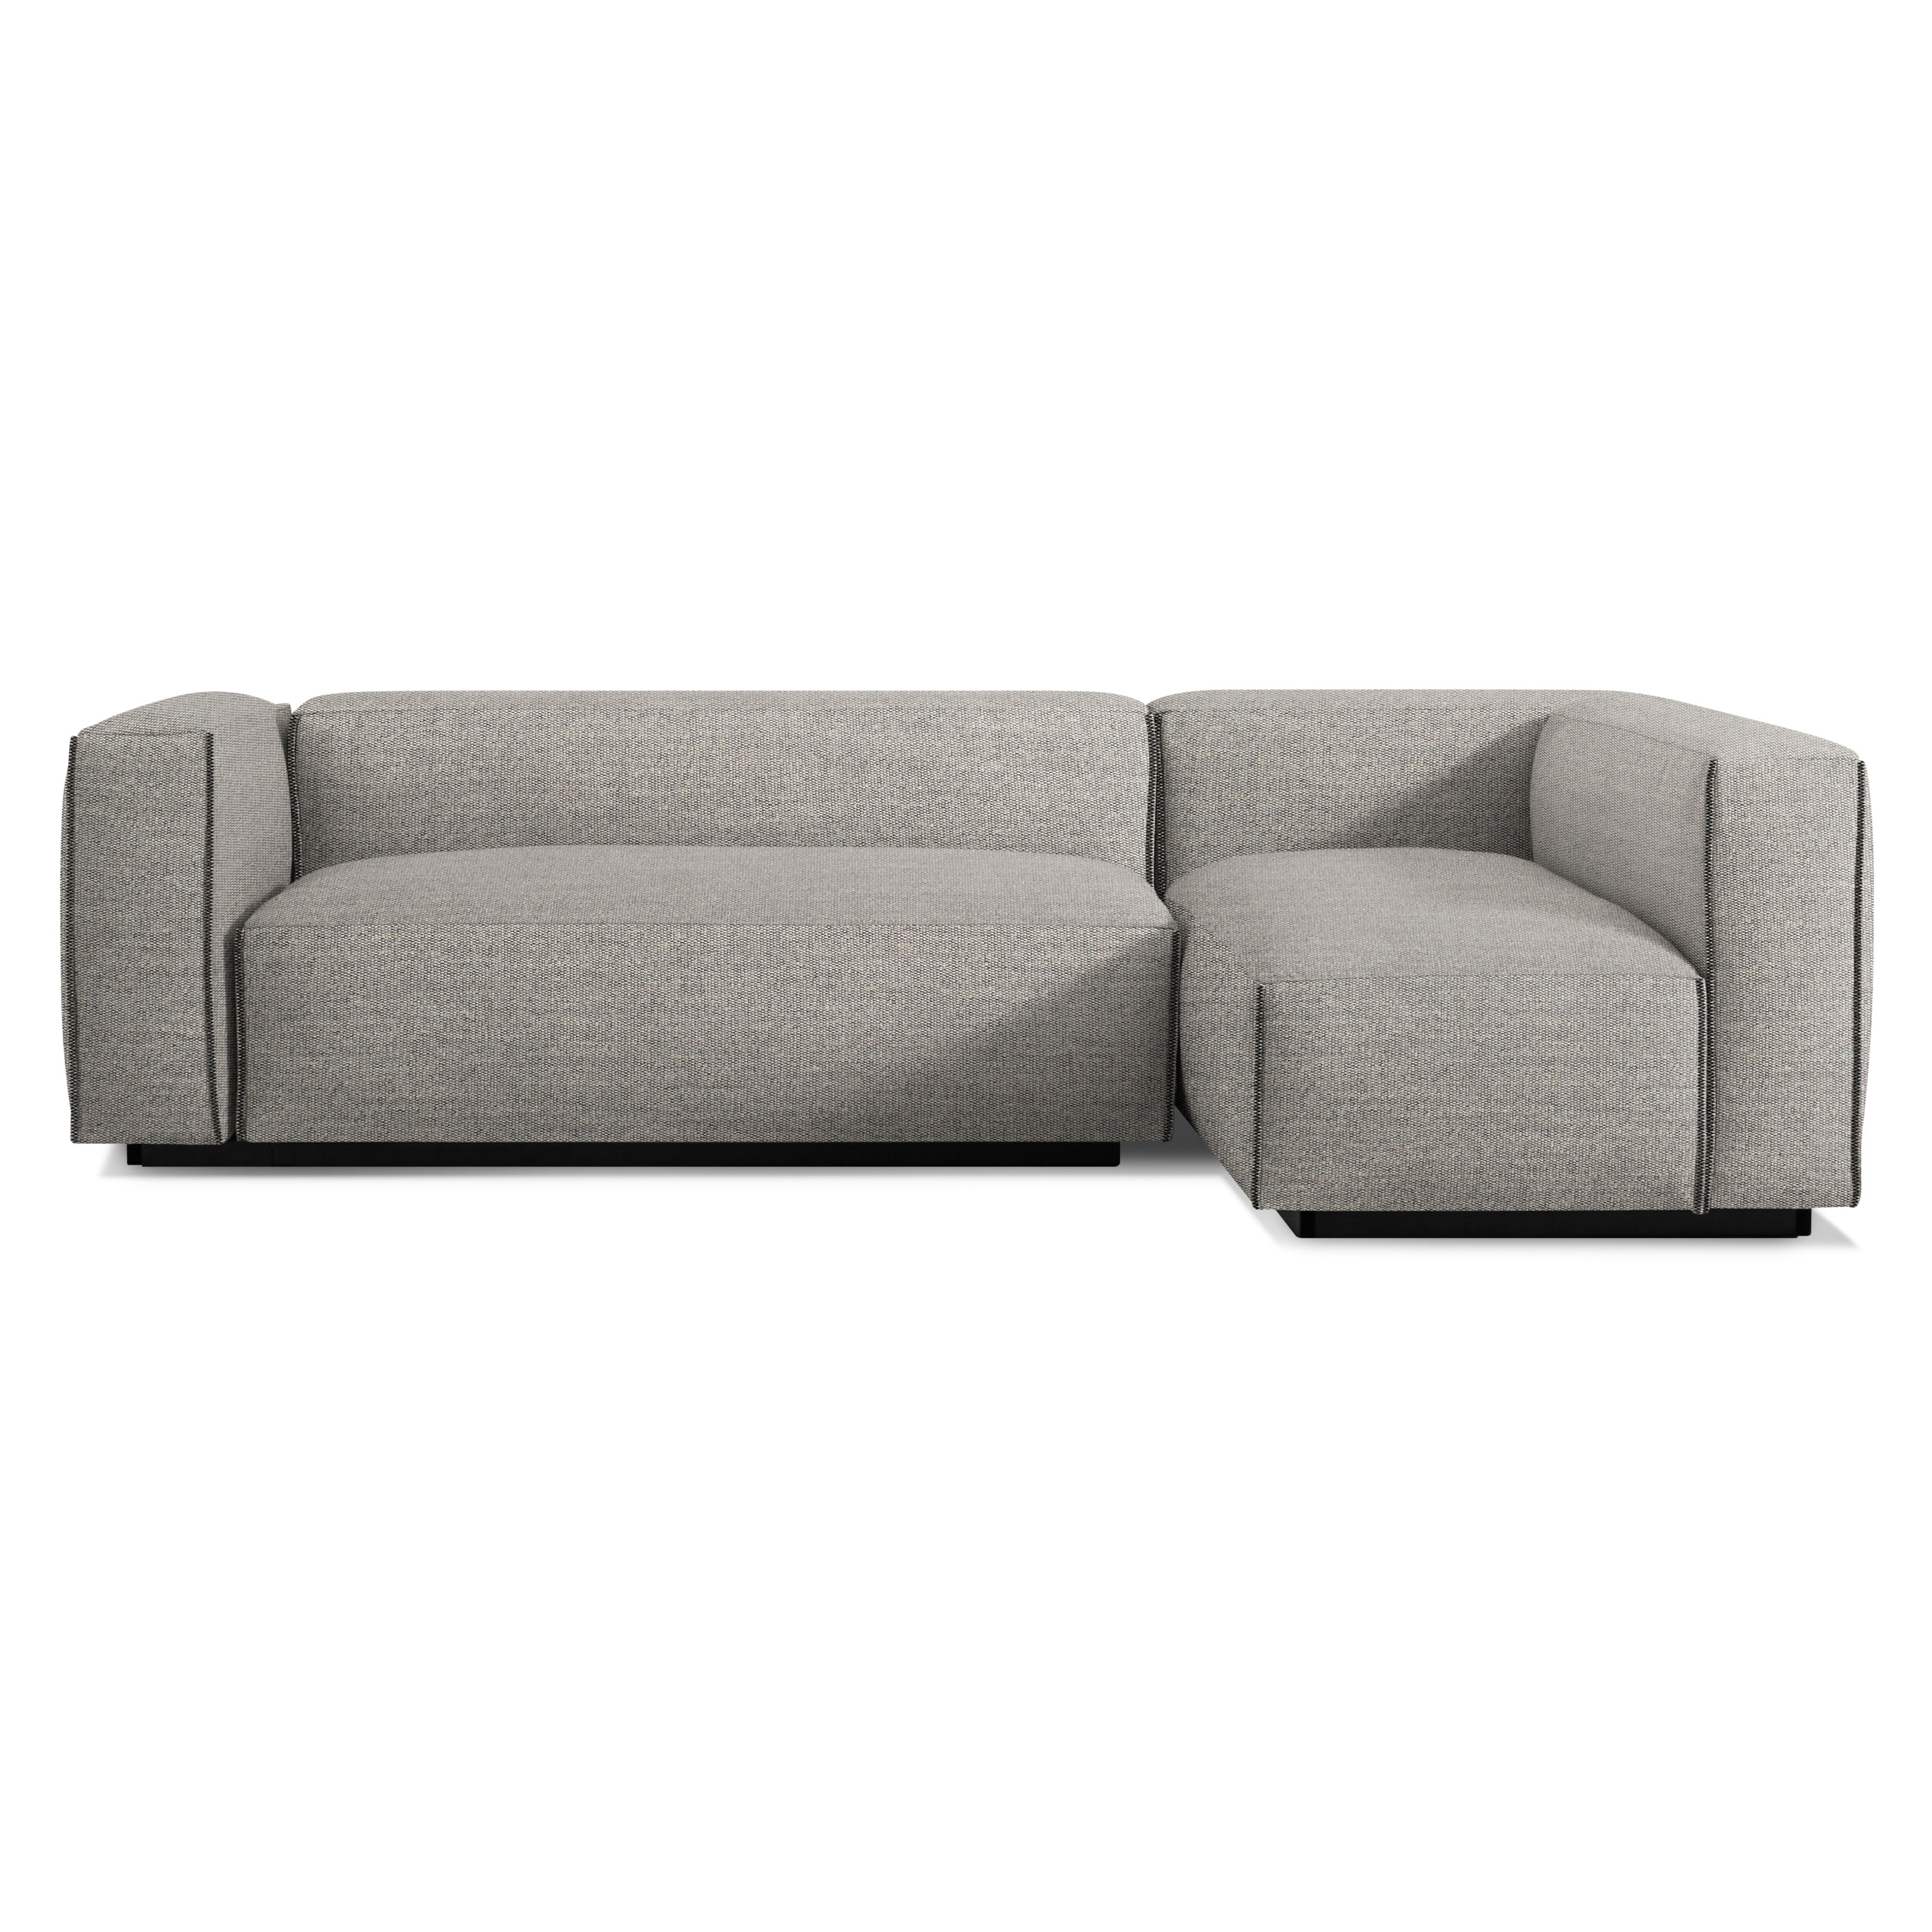 Modern Sectional Sofas previous image cleon small sectional sofa - tait charcoal ... UKXFRAQ